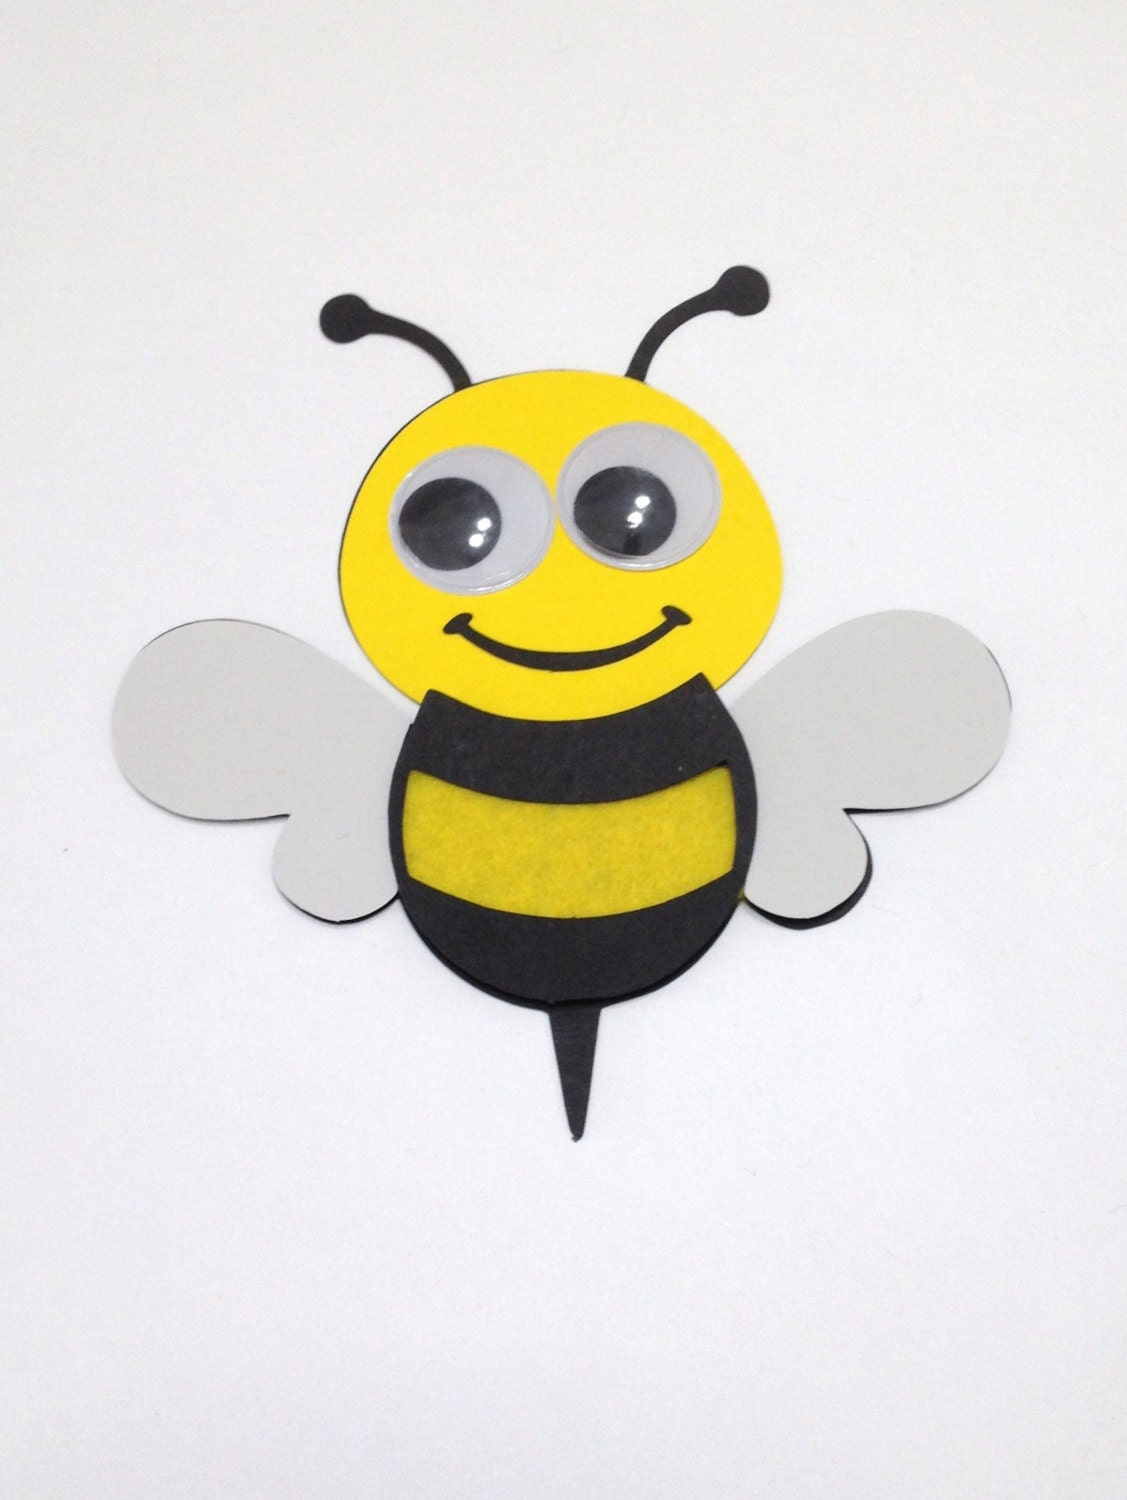 Craft bumble bee - Craft Bumble Bee Bumble Bees For Crafts Craft Bumble Bees Zoom